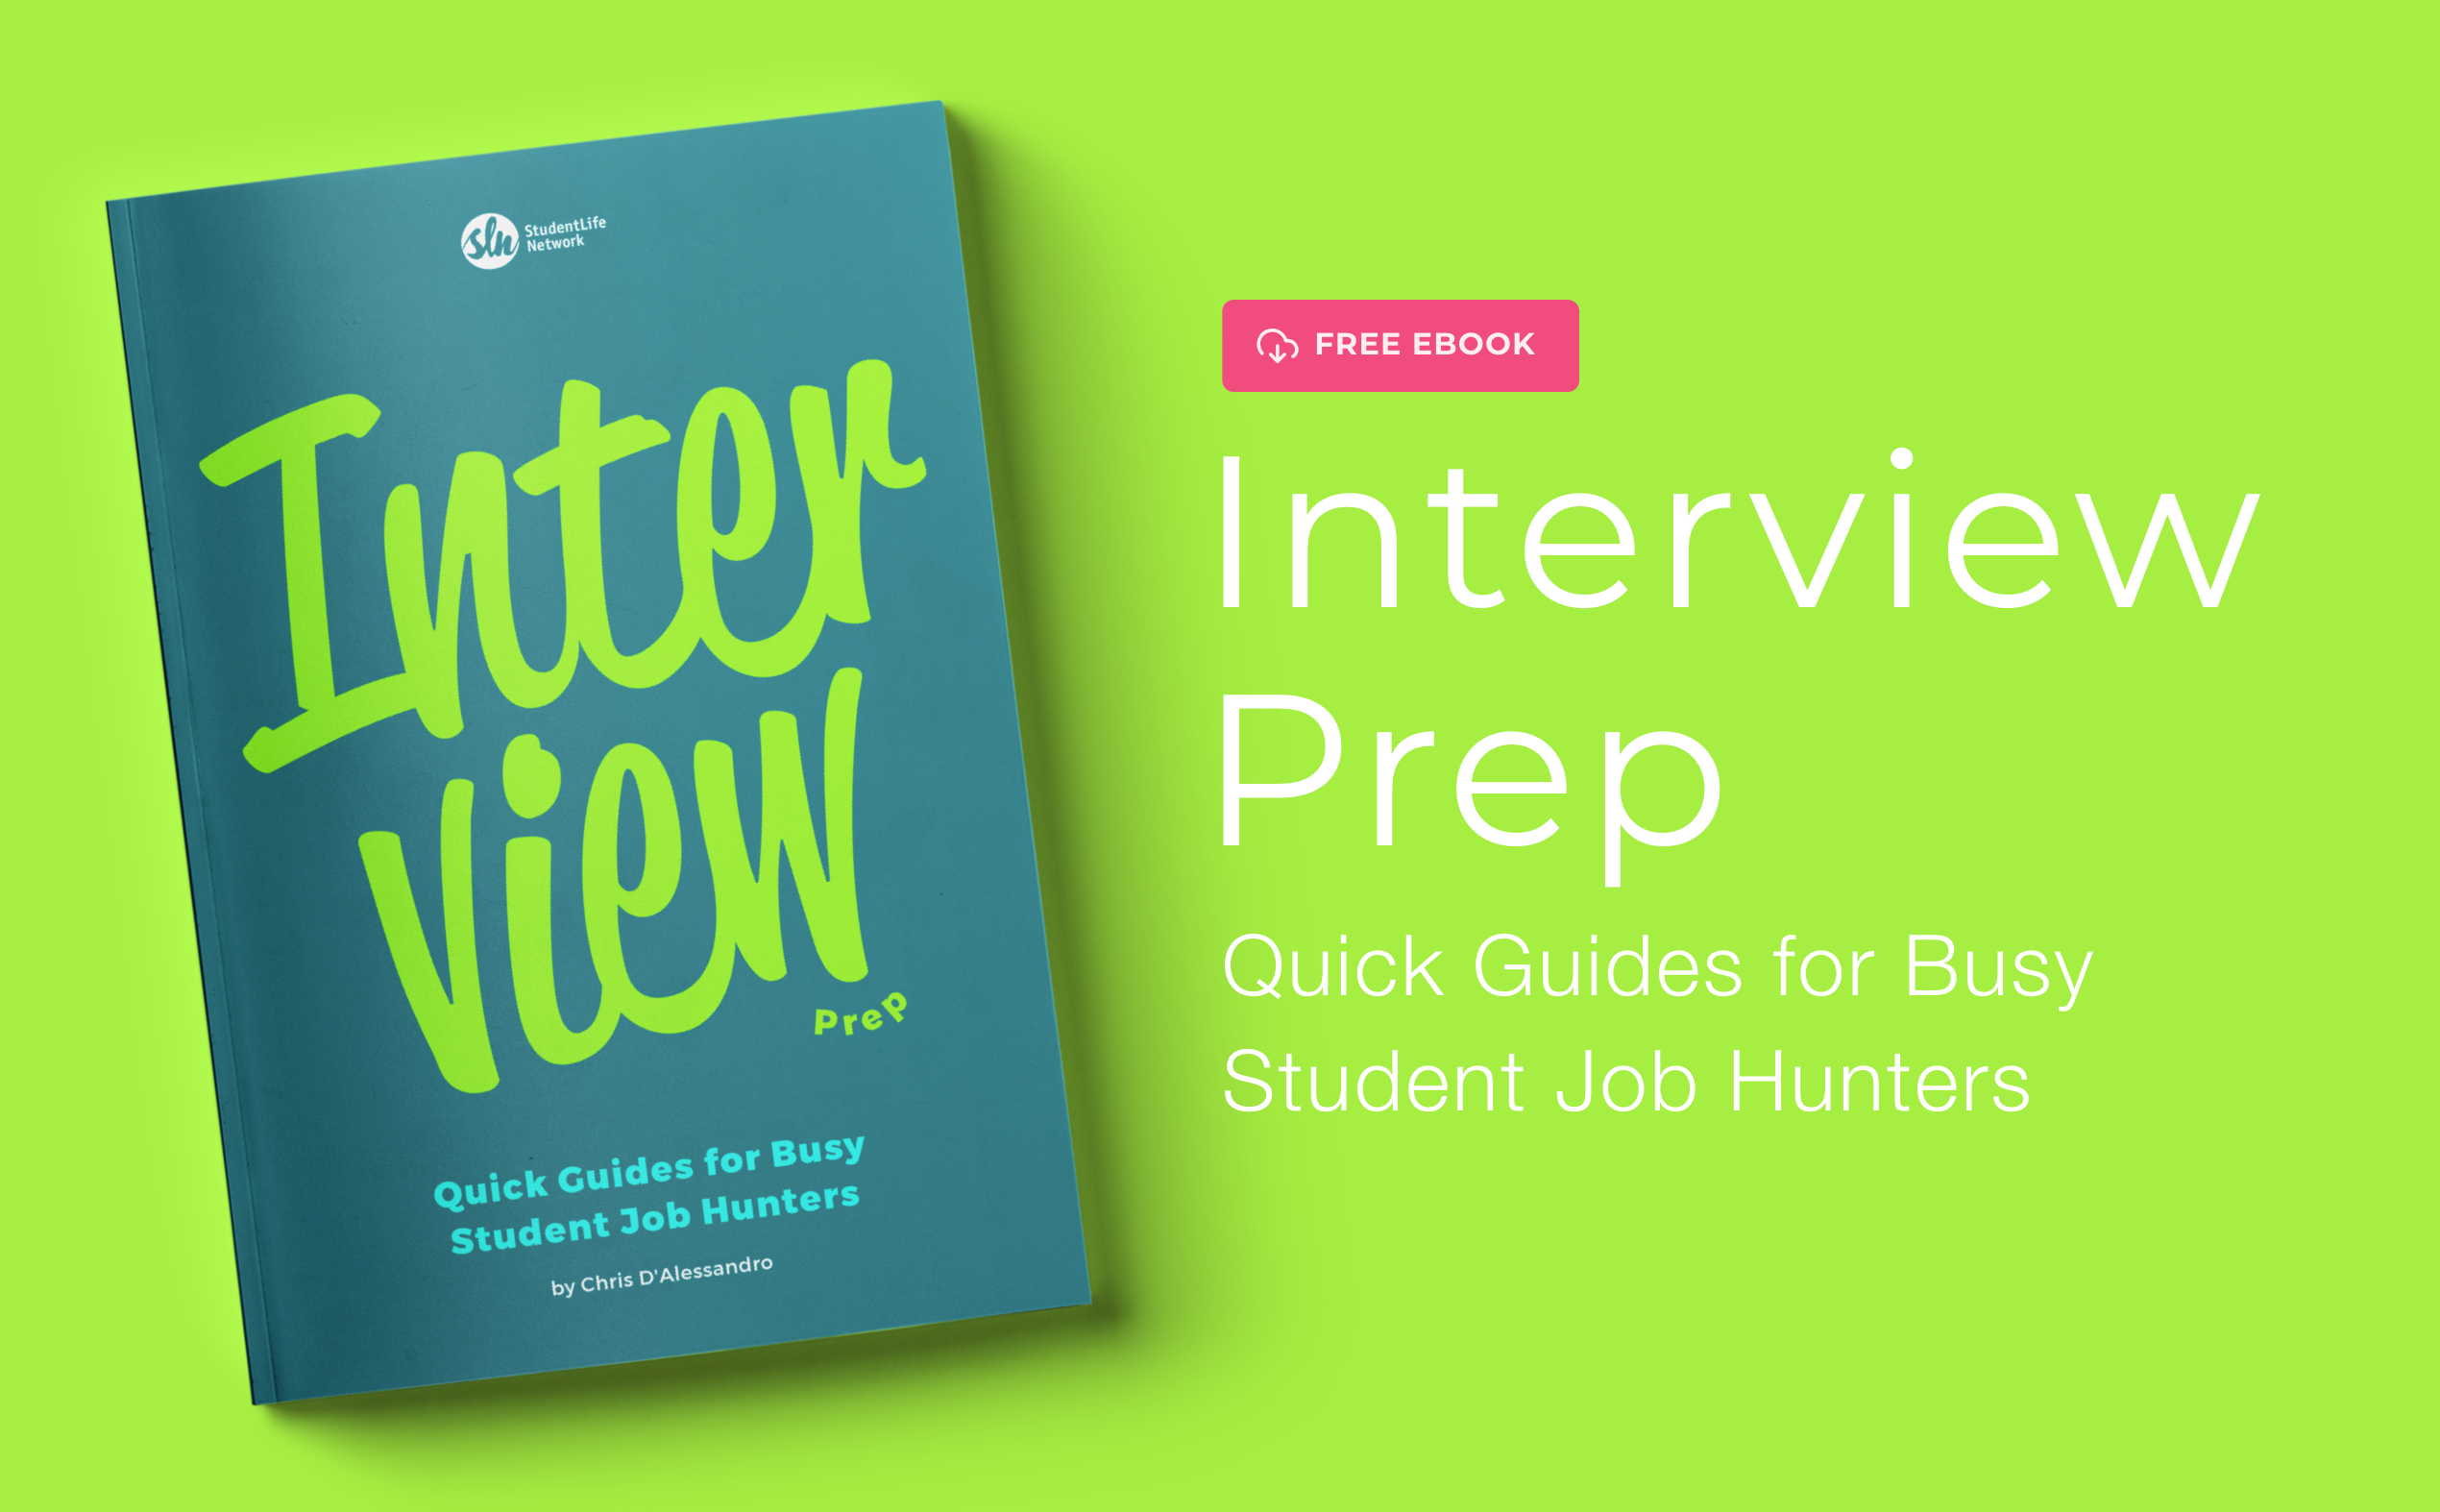 Our Free E-Book Helps You Prepare For Your Job Interview